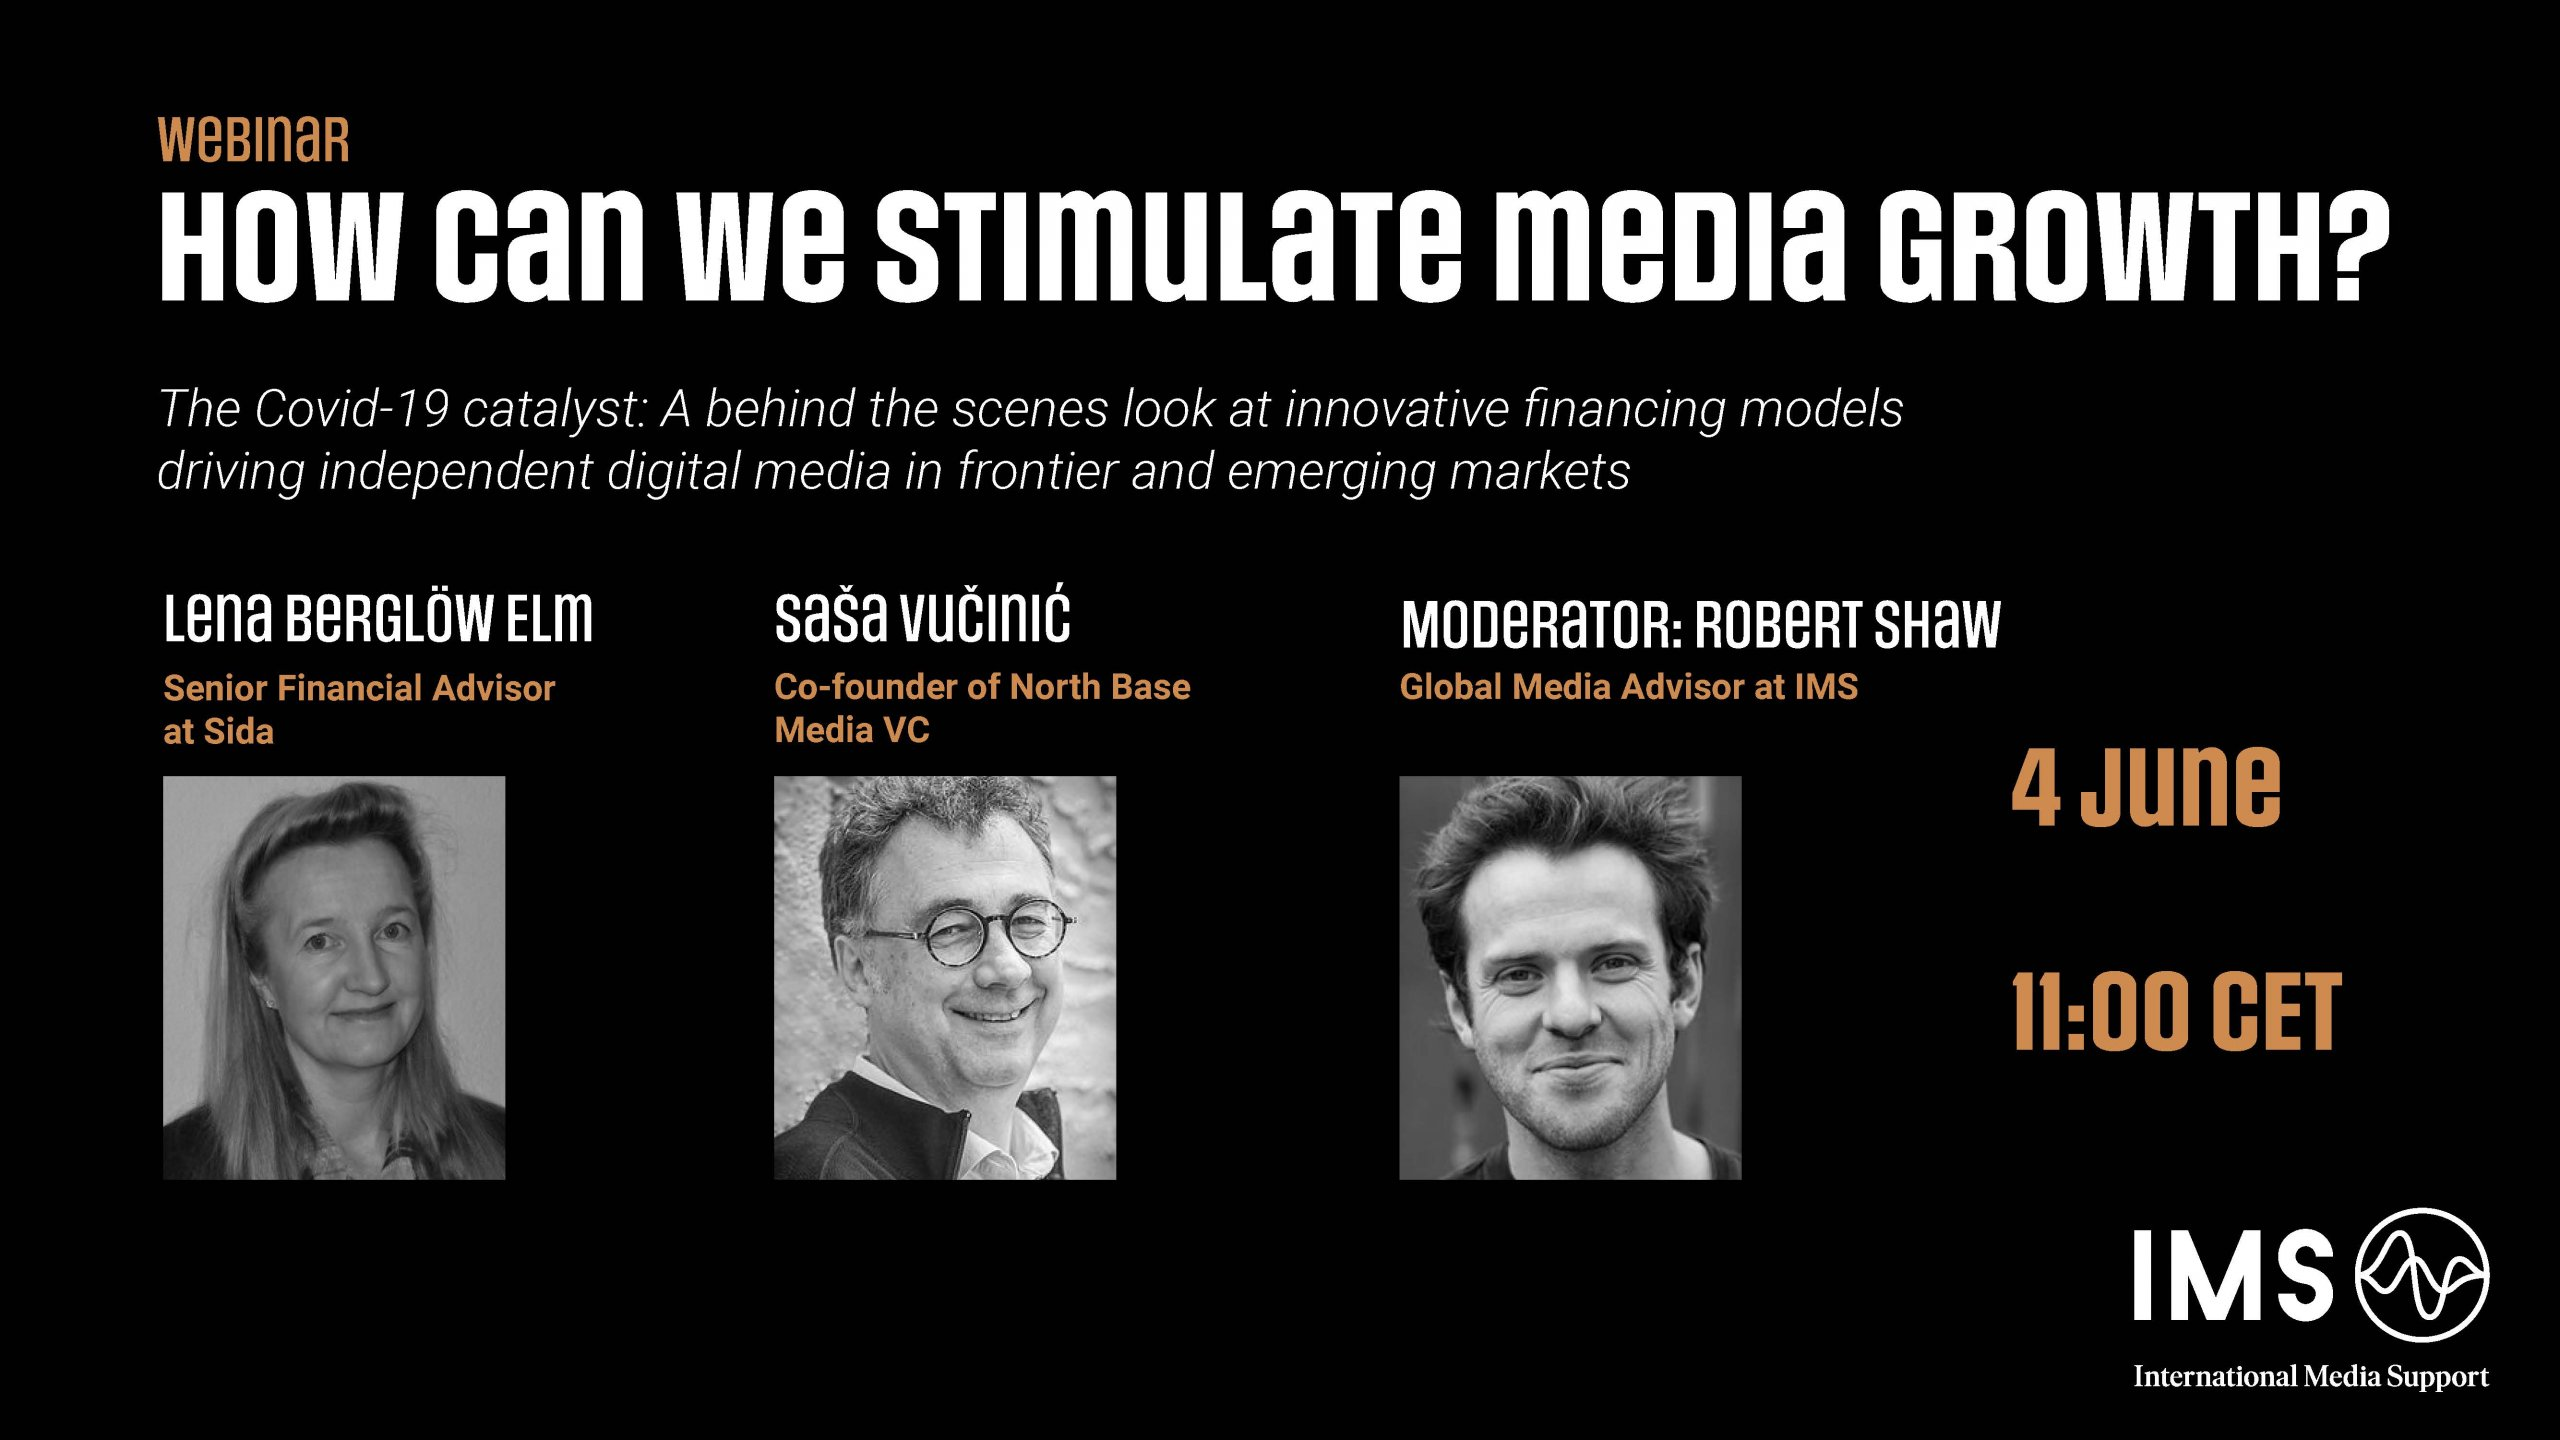 Webinar: Amid Covid-19 - how can we stimulate media growth?